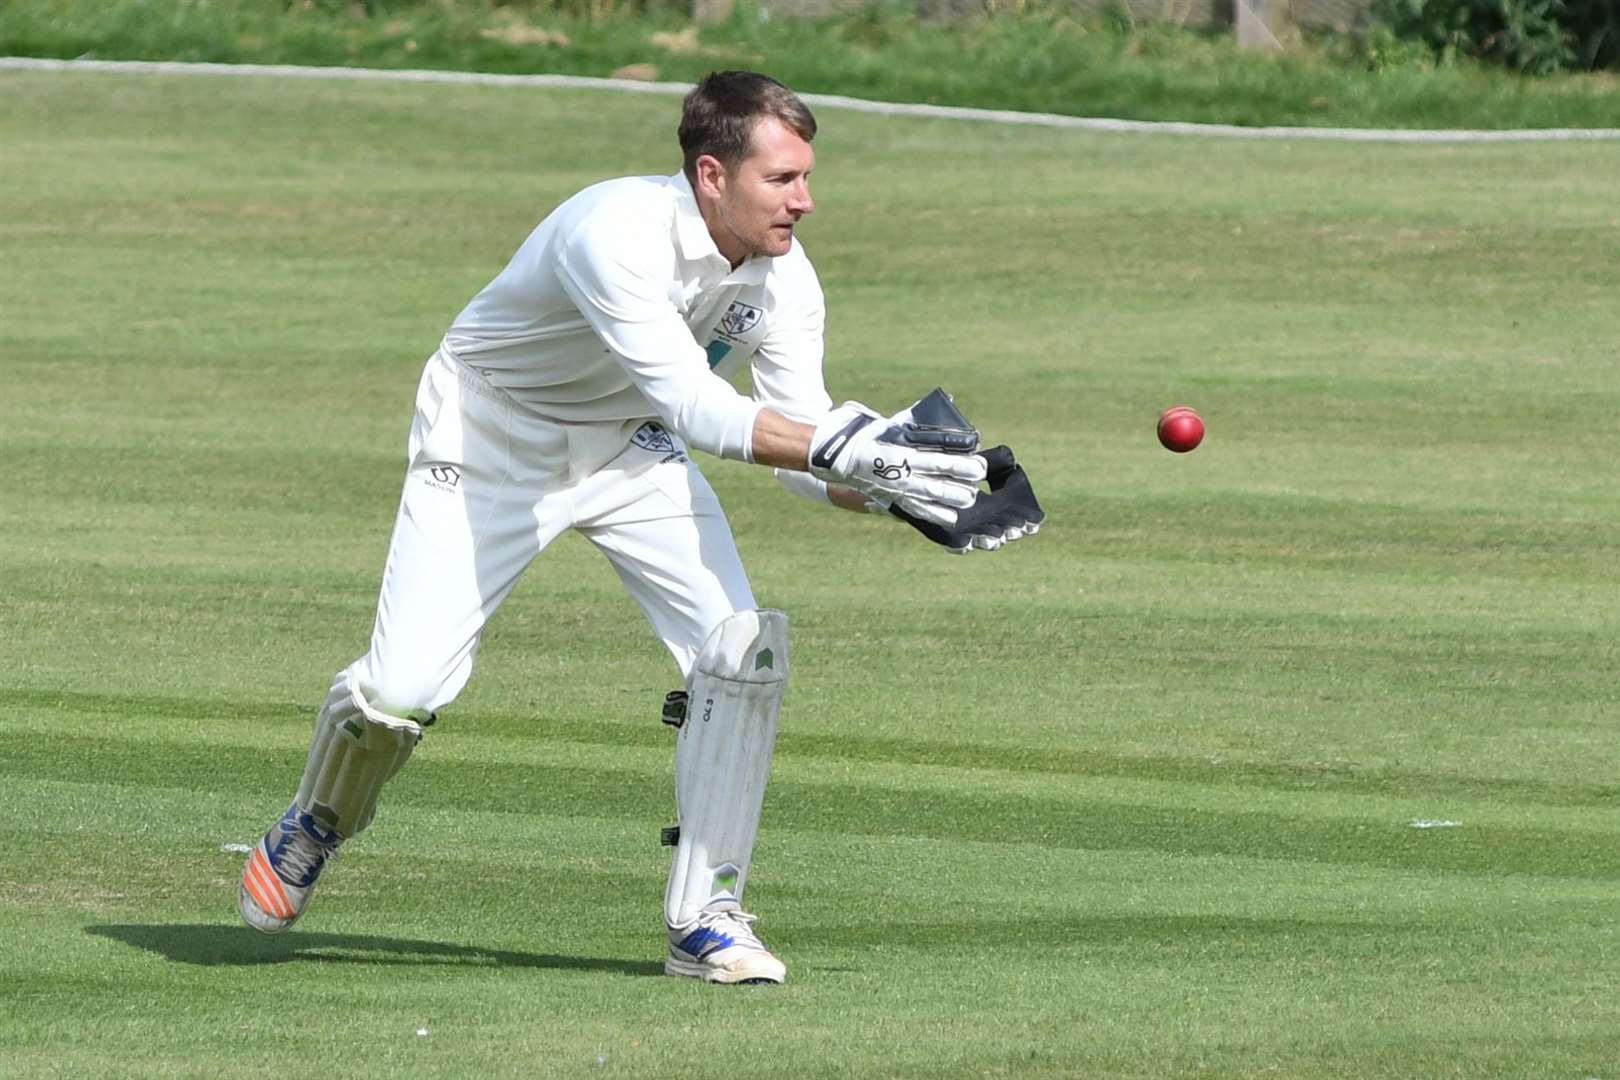 Burghley Park beat Ufford Park to win the Rutland League Division Two title on Sunday. Photo: Alan Walters (16783010)